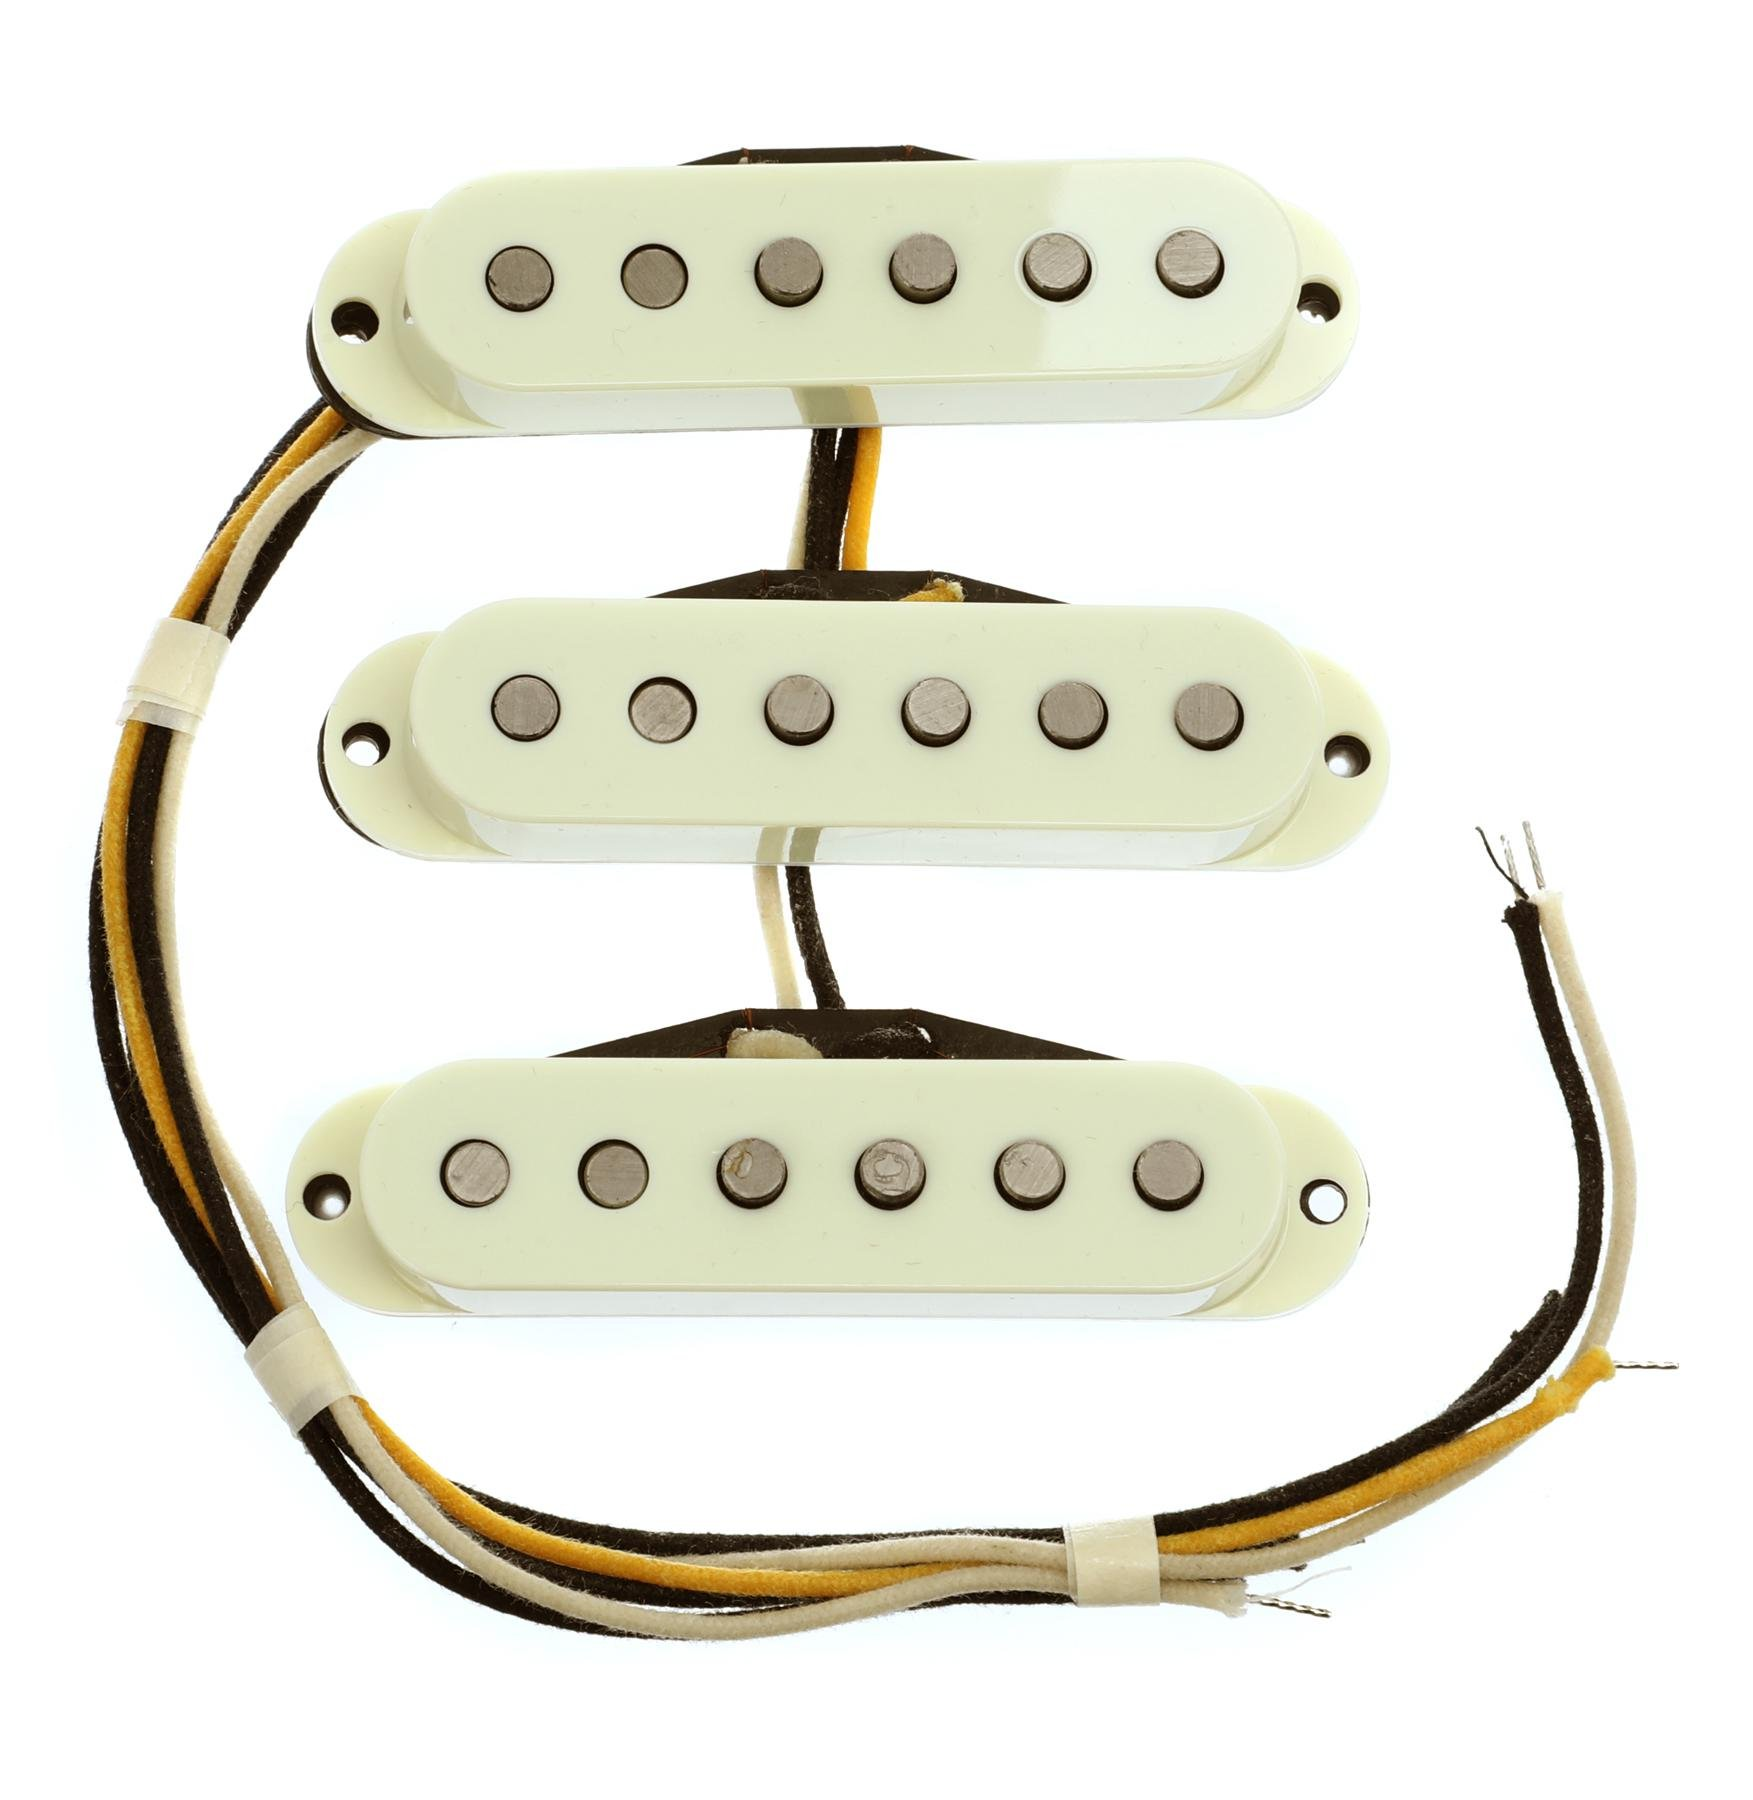 Fender Custom Shop Josefina Limited Edition Hand Wound Fat 50s Stratocaster Wiring Diagram Pickup Set Image